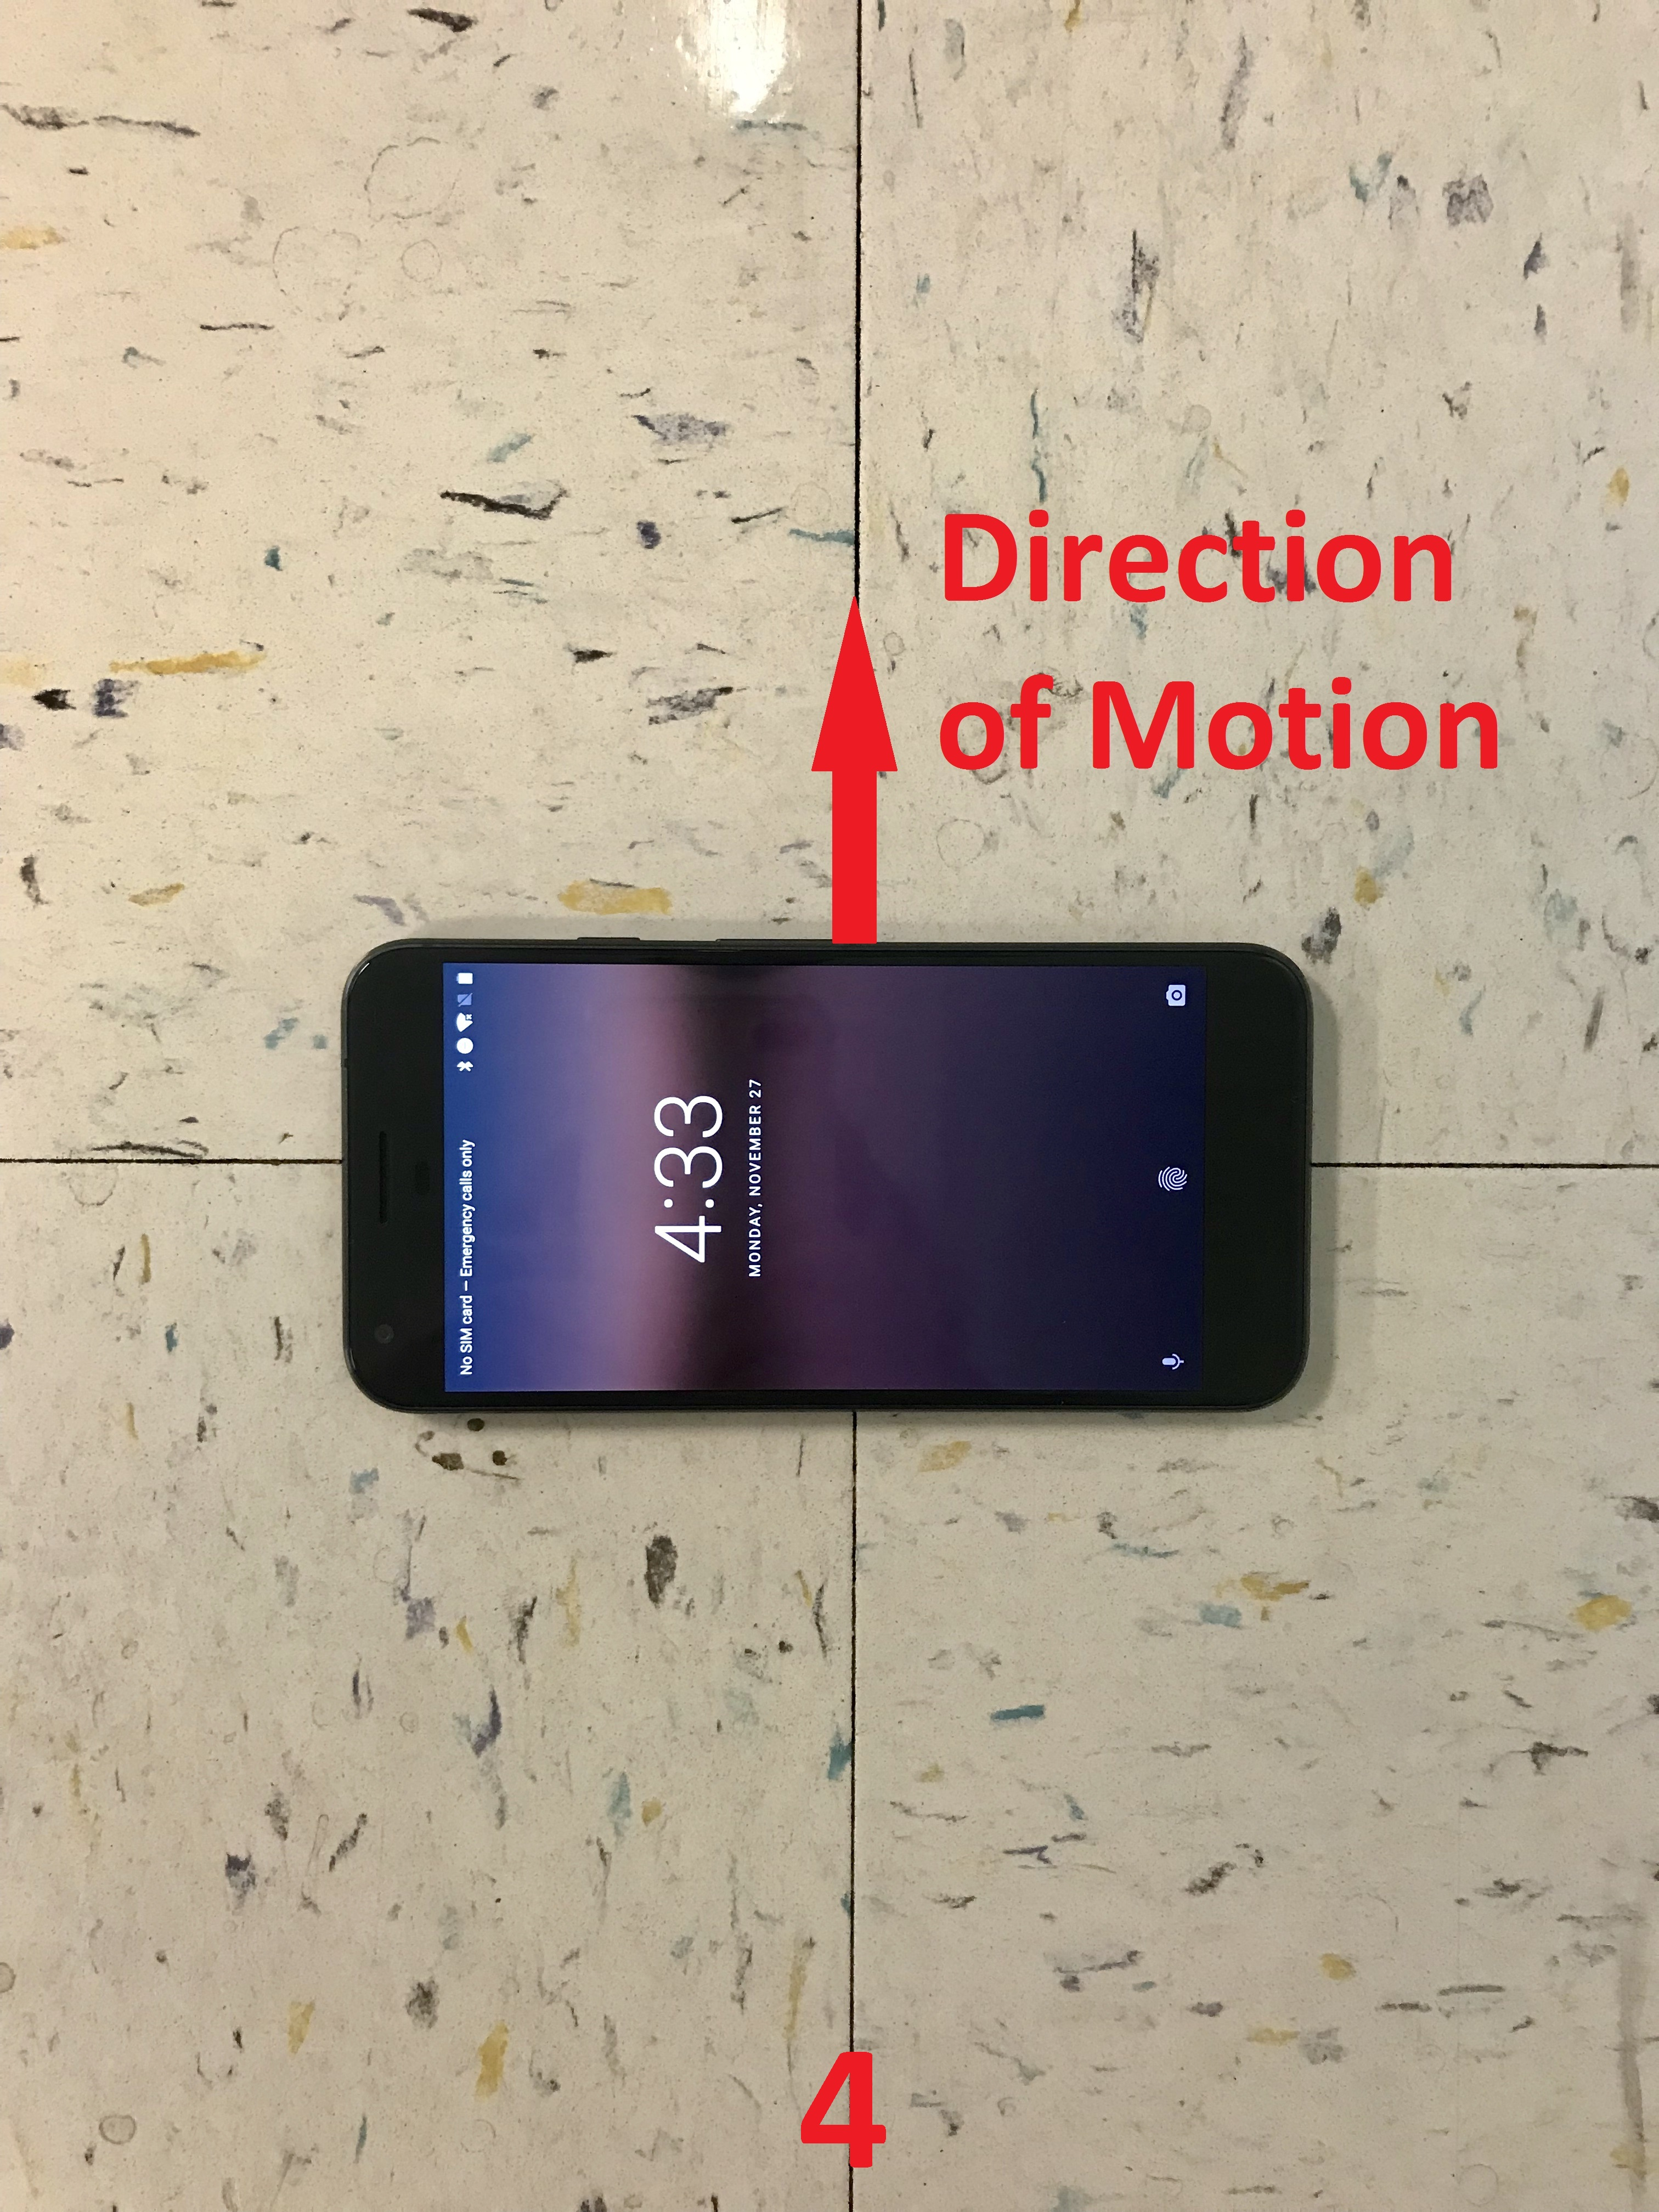 The y-axis of the phone pointing to the left (by 90 degrees) of direction of motion